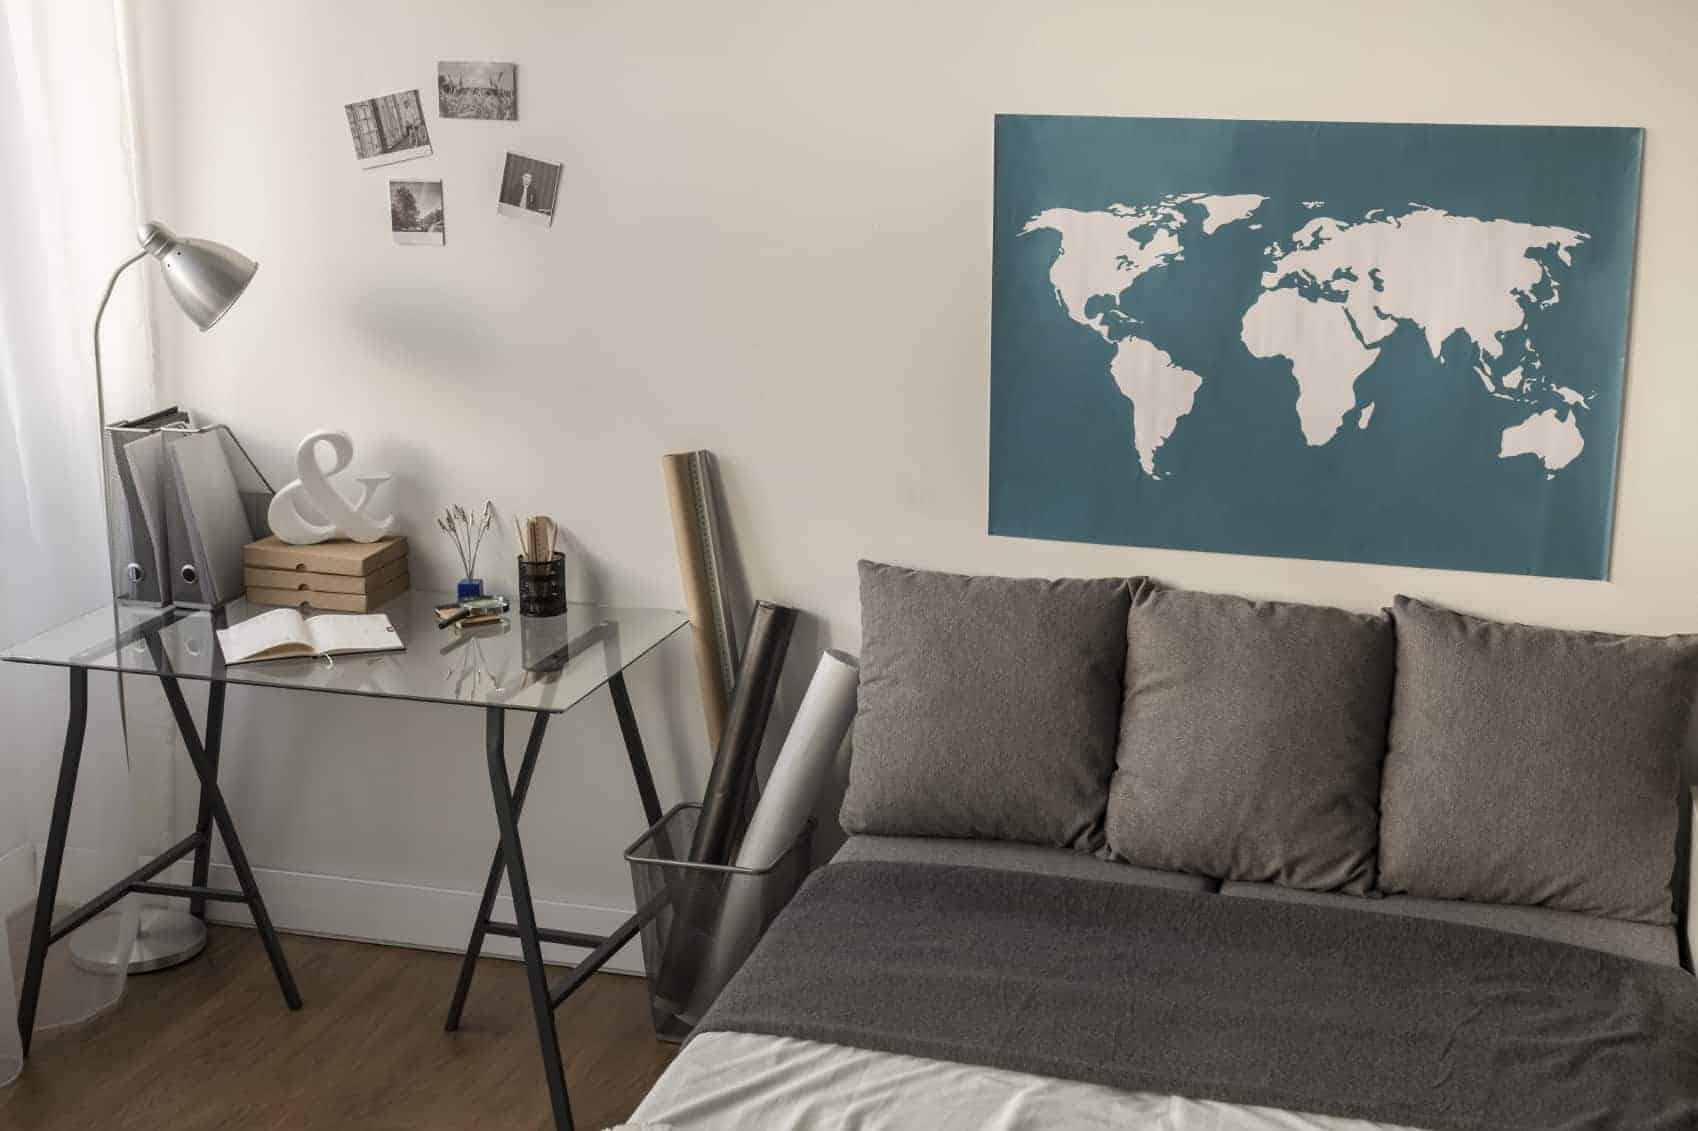 Apartment bedroom with world map on the wall